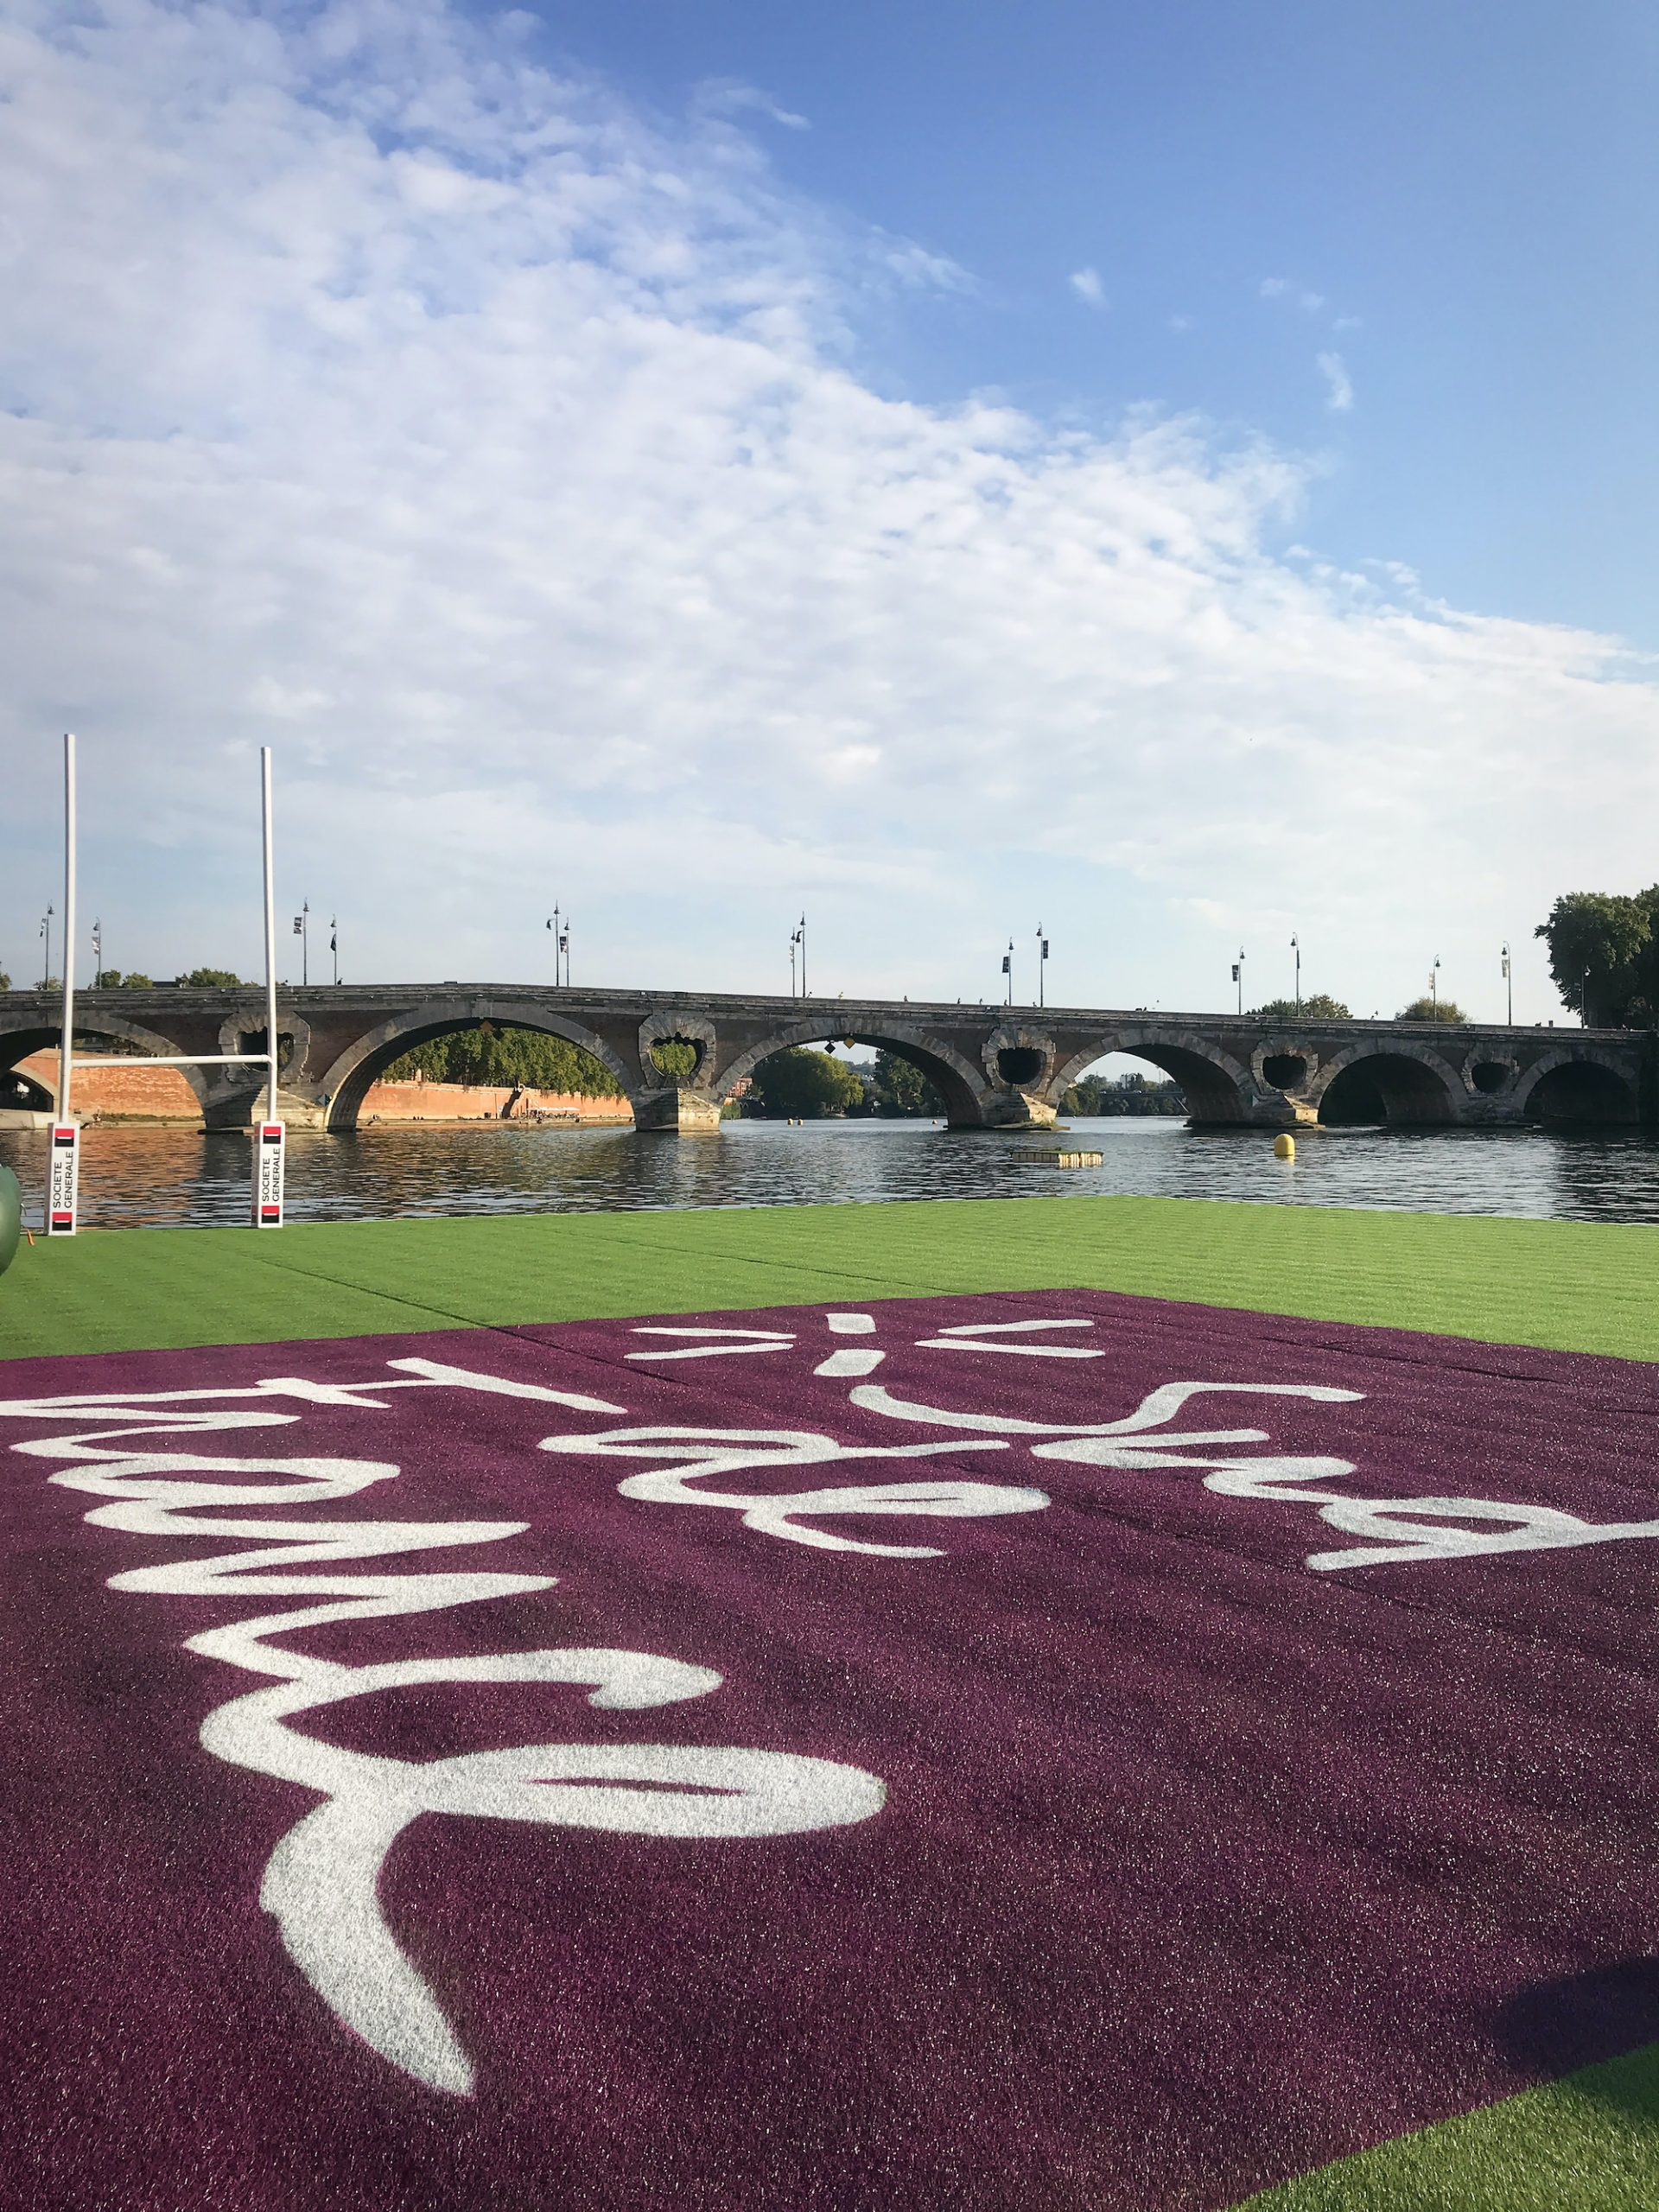 waterugby-toulouse-logo-terrain-rugby